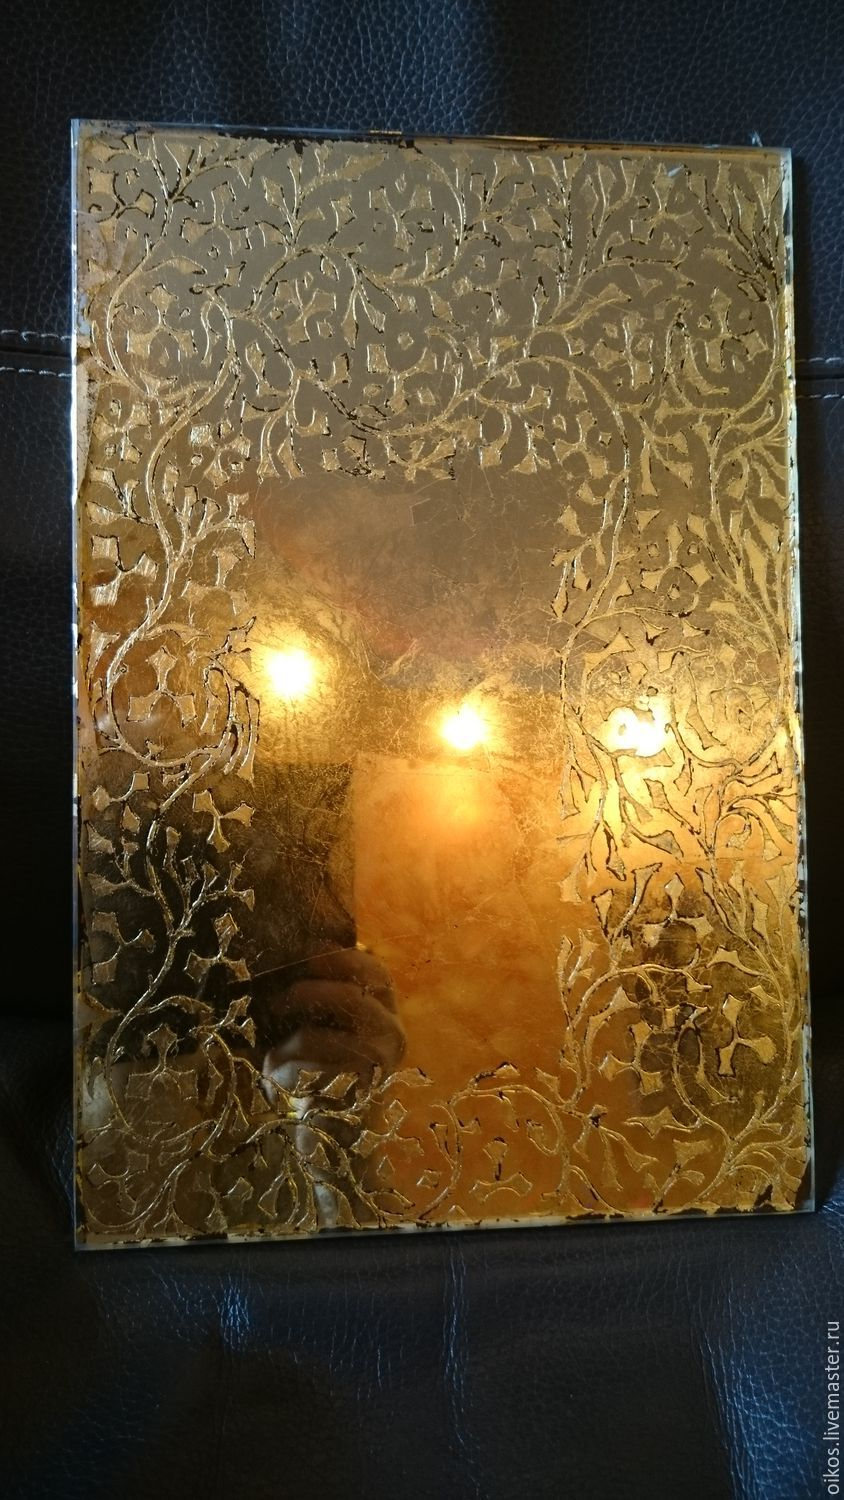 Antique Ornamental Wall Mirror Gold Leaf In The Art Deco Style Kupit Na Yarmarke Masterov 8mi91com Zerkala St Petersburg